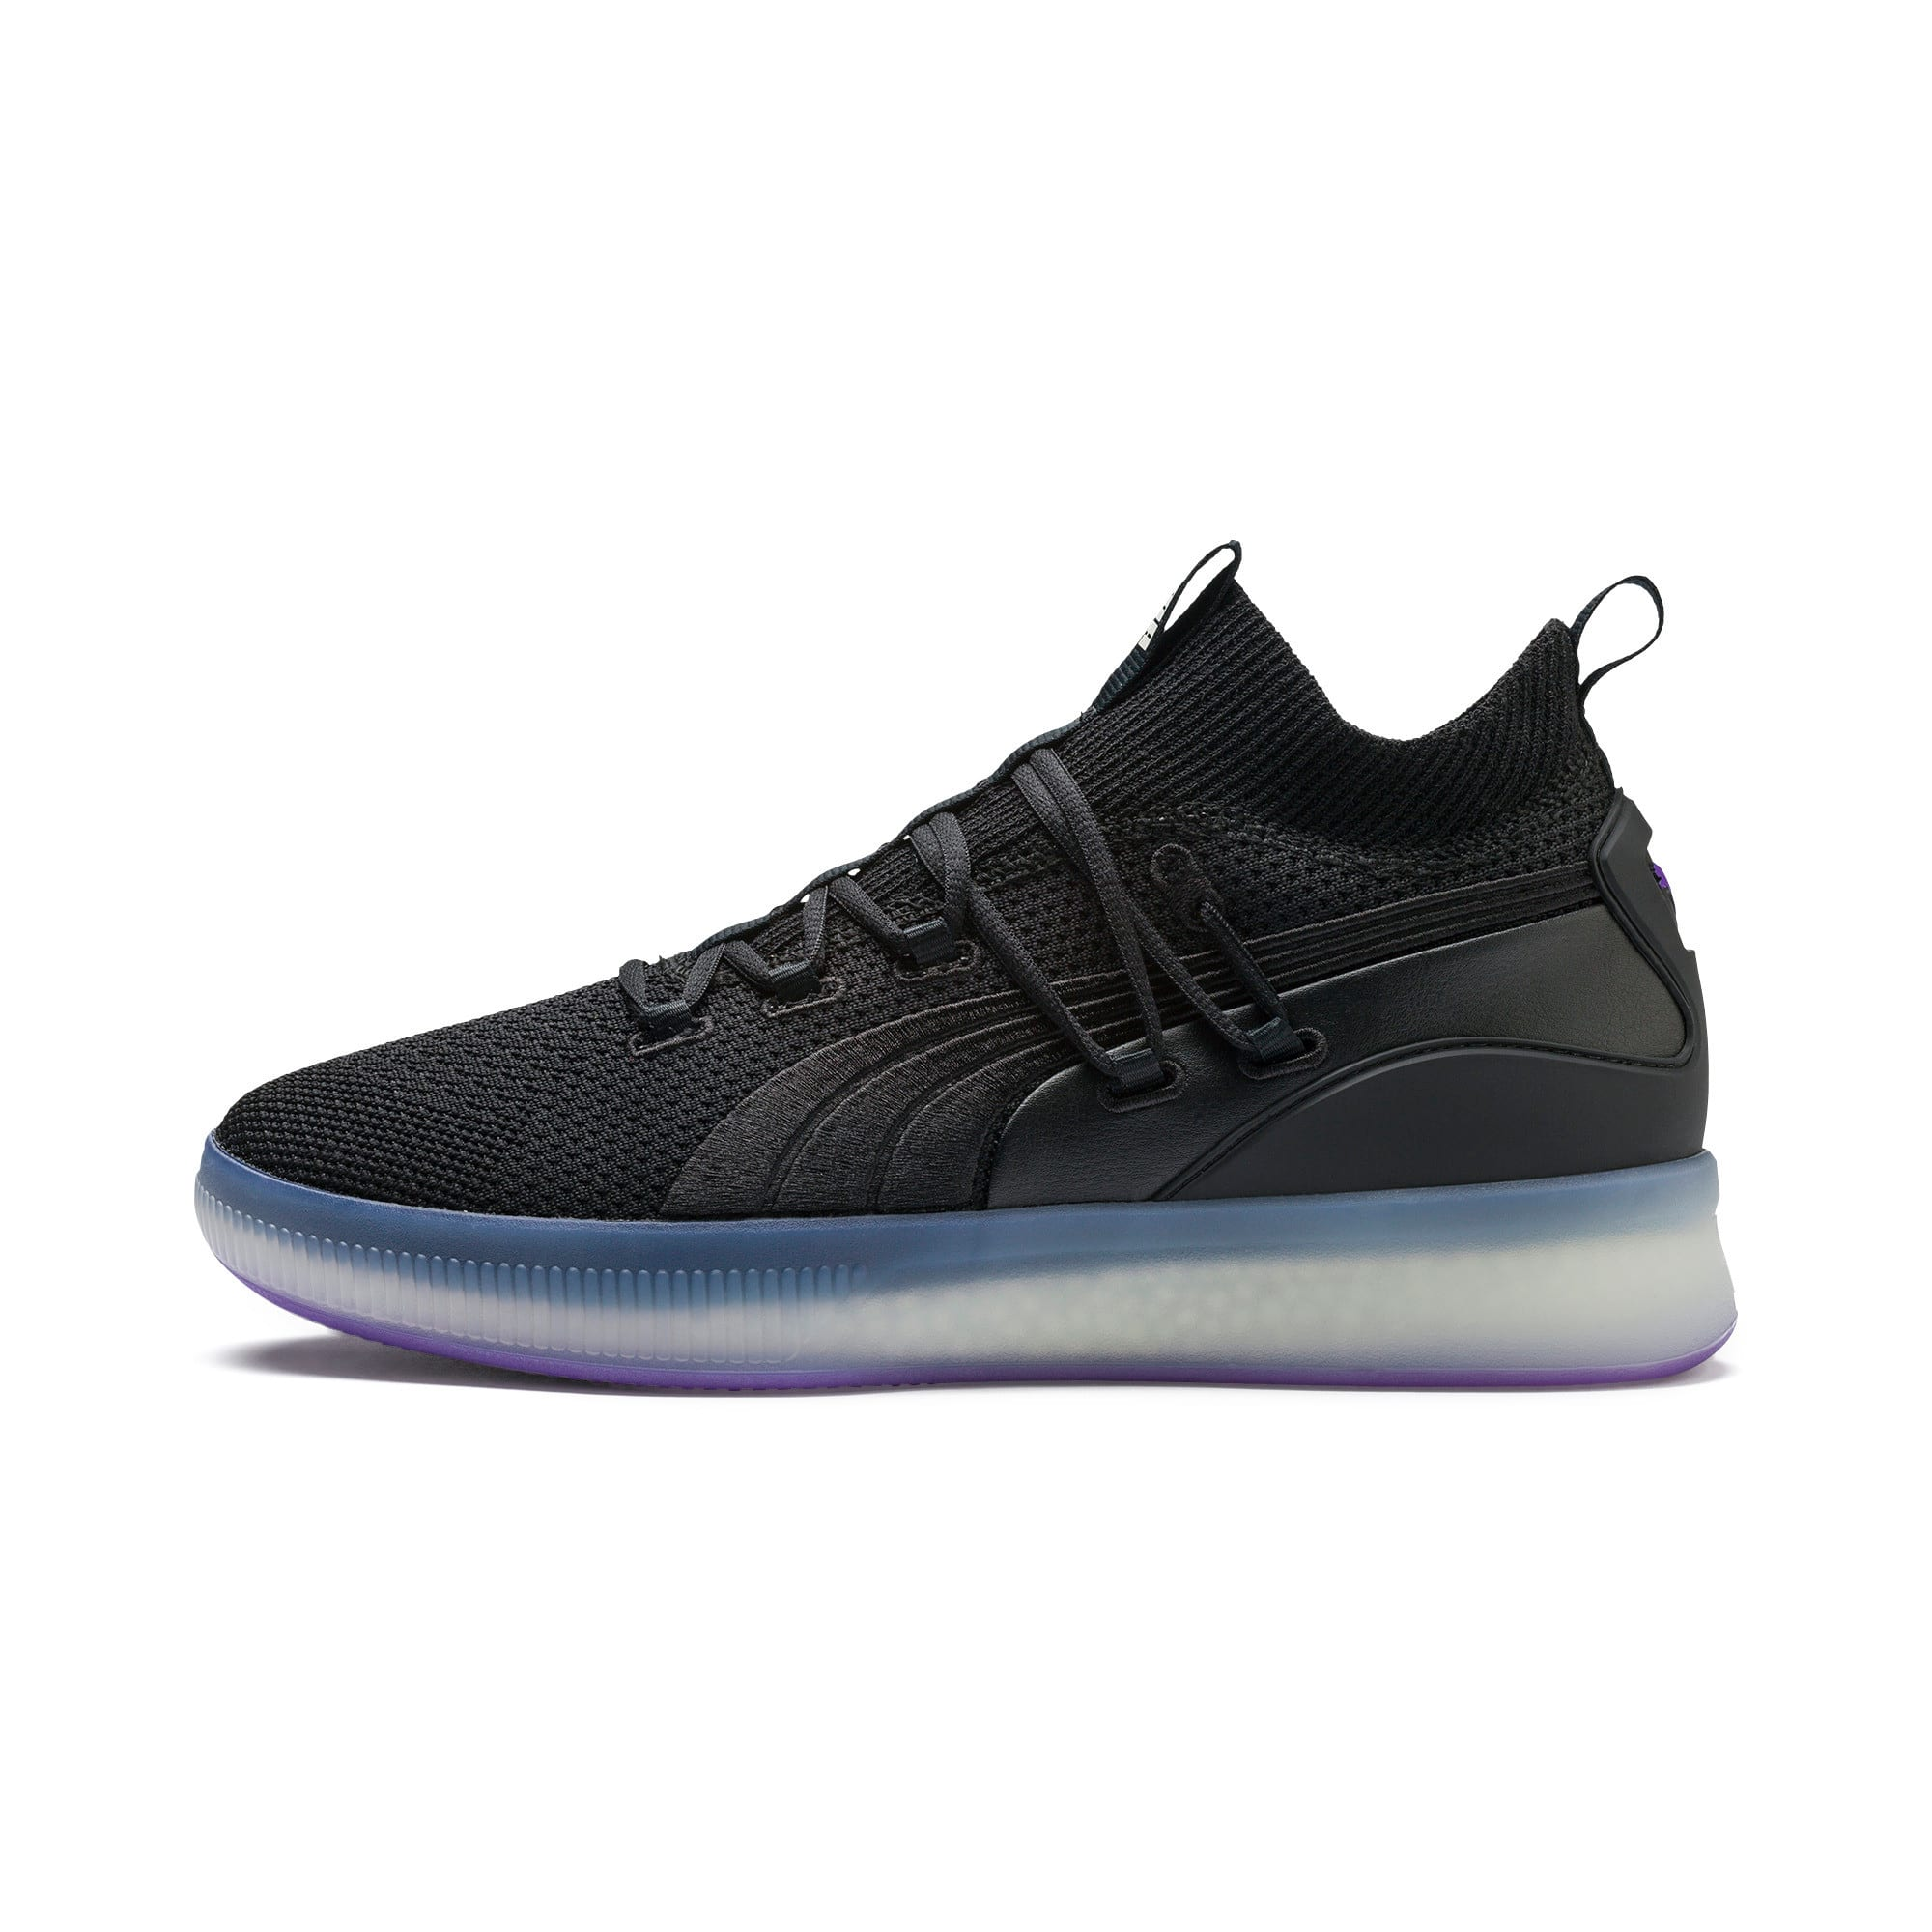 Thumbnail 1 of Clyde Court Basketball Shoes, Puma Black-ELECTRIC PURPLE, medium